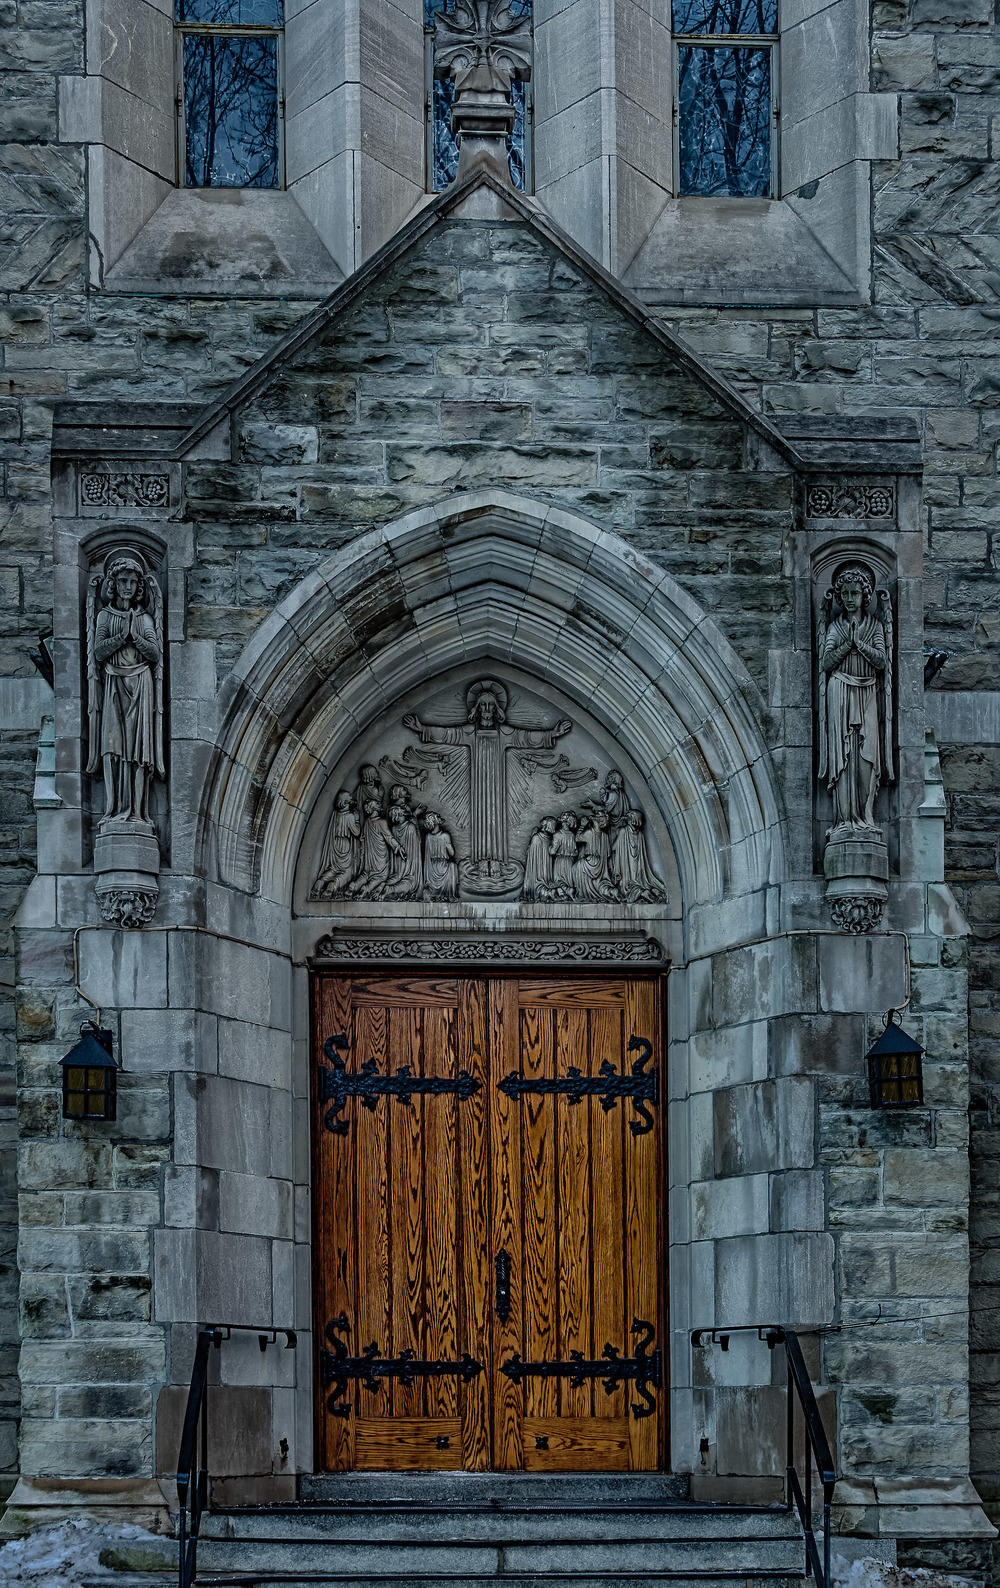 20140112_Westmount  Architecture, St. Marc-Sherbrooke St.__MG_2417_HDR-Edit.jpg